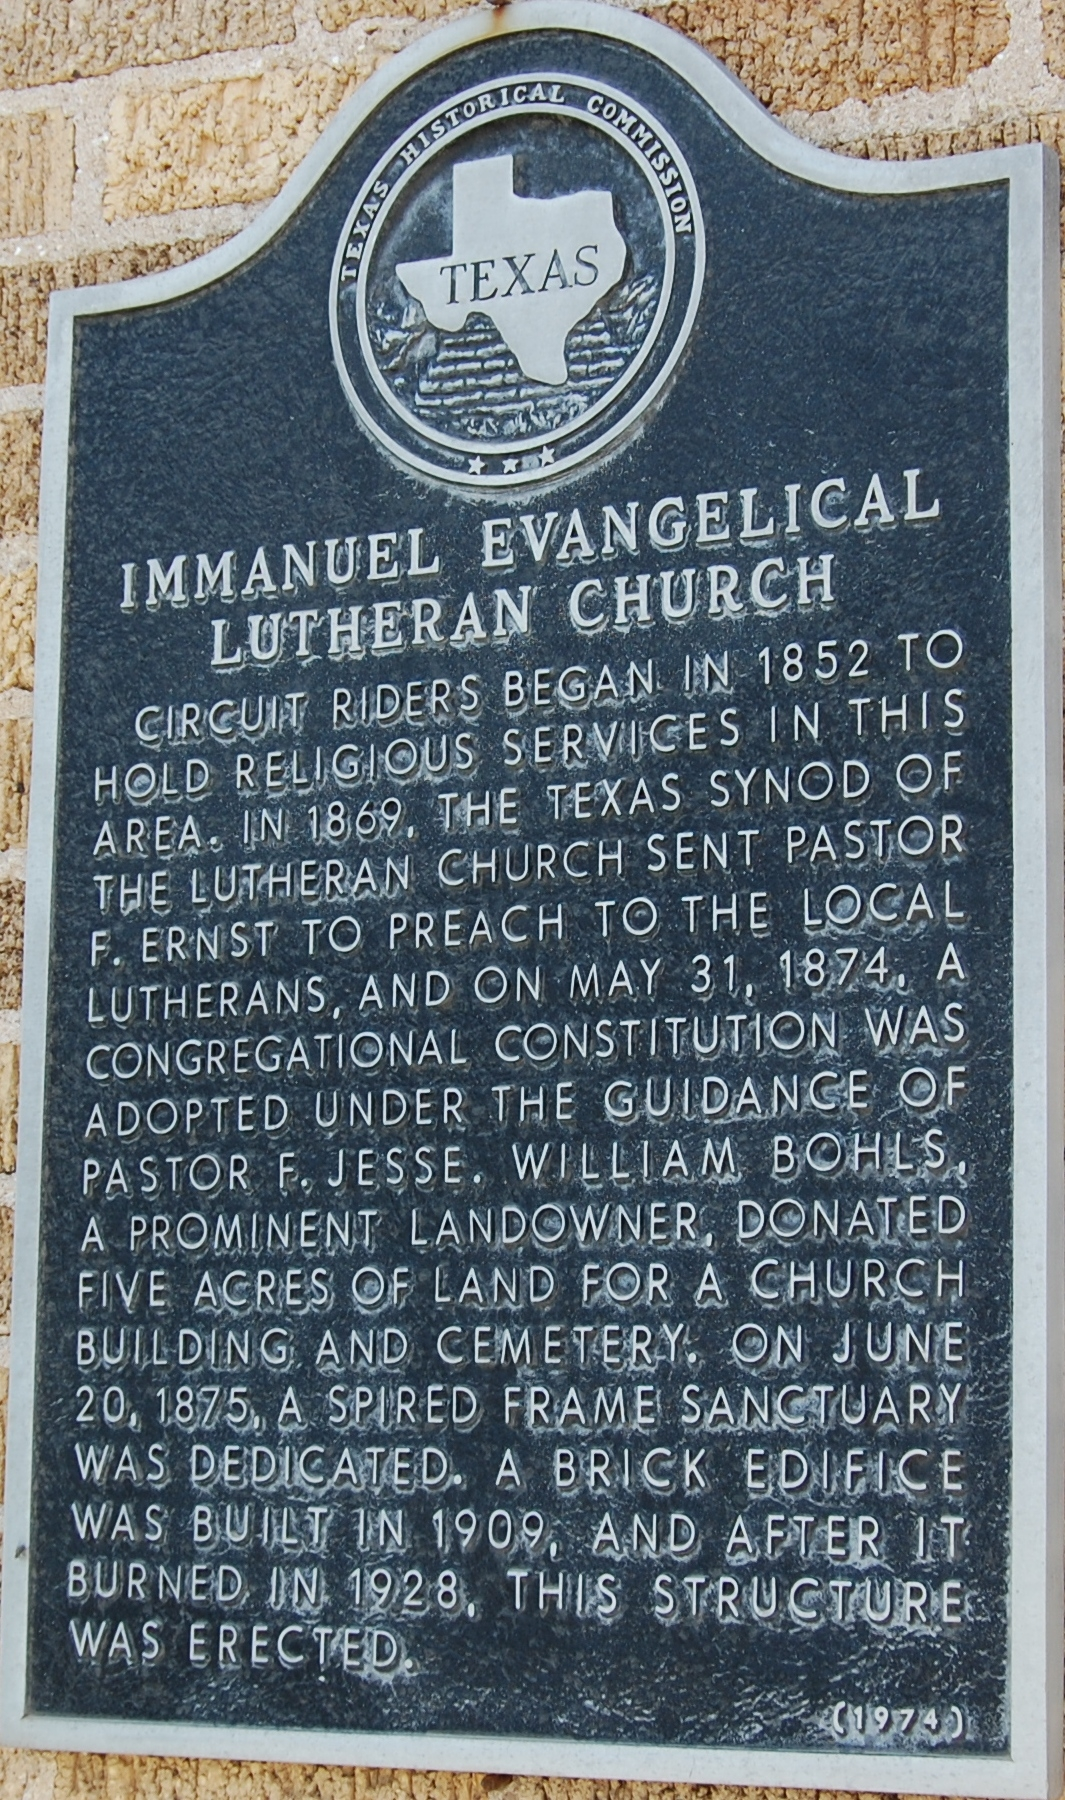 The Immanueal Evangelical Lutheran Church Historical Marker